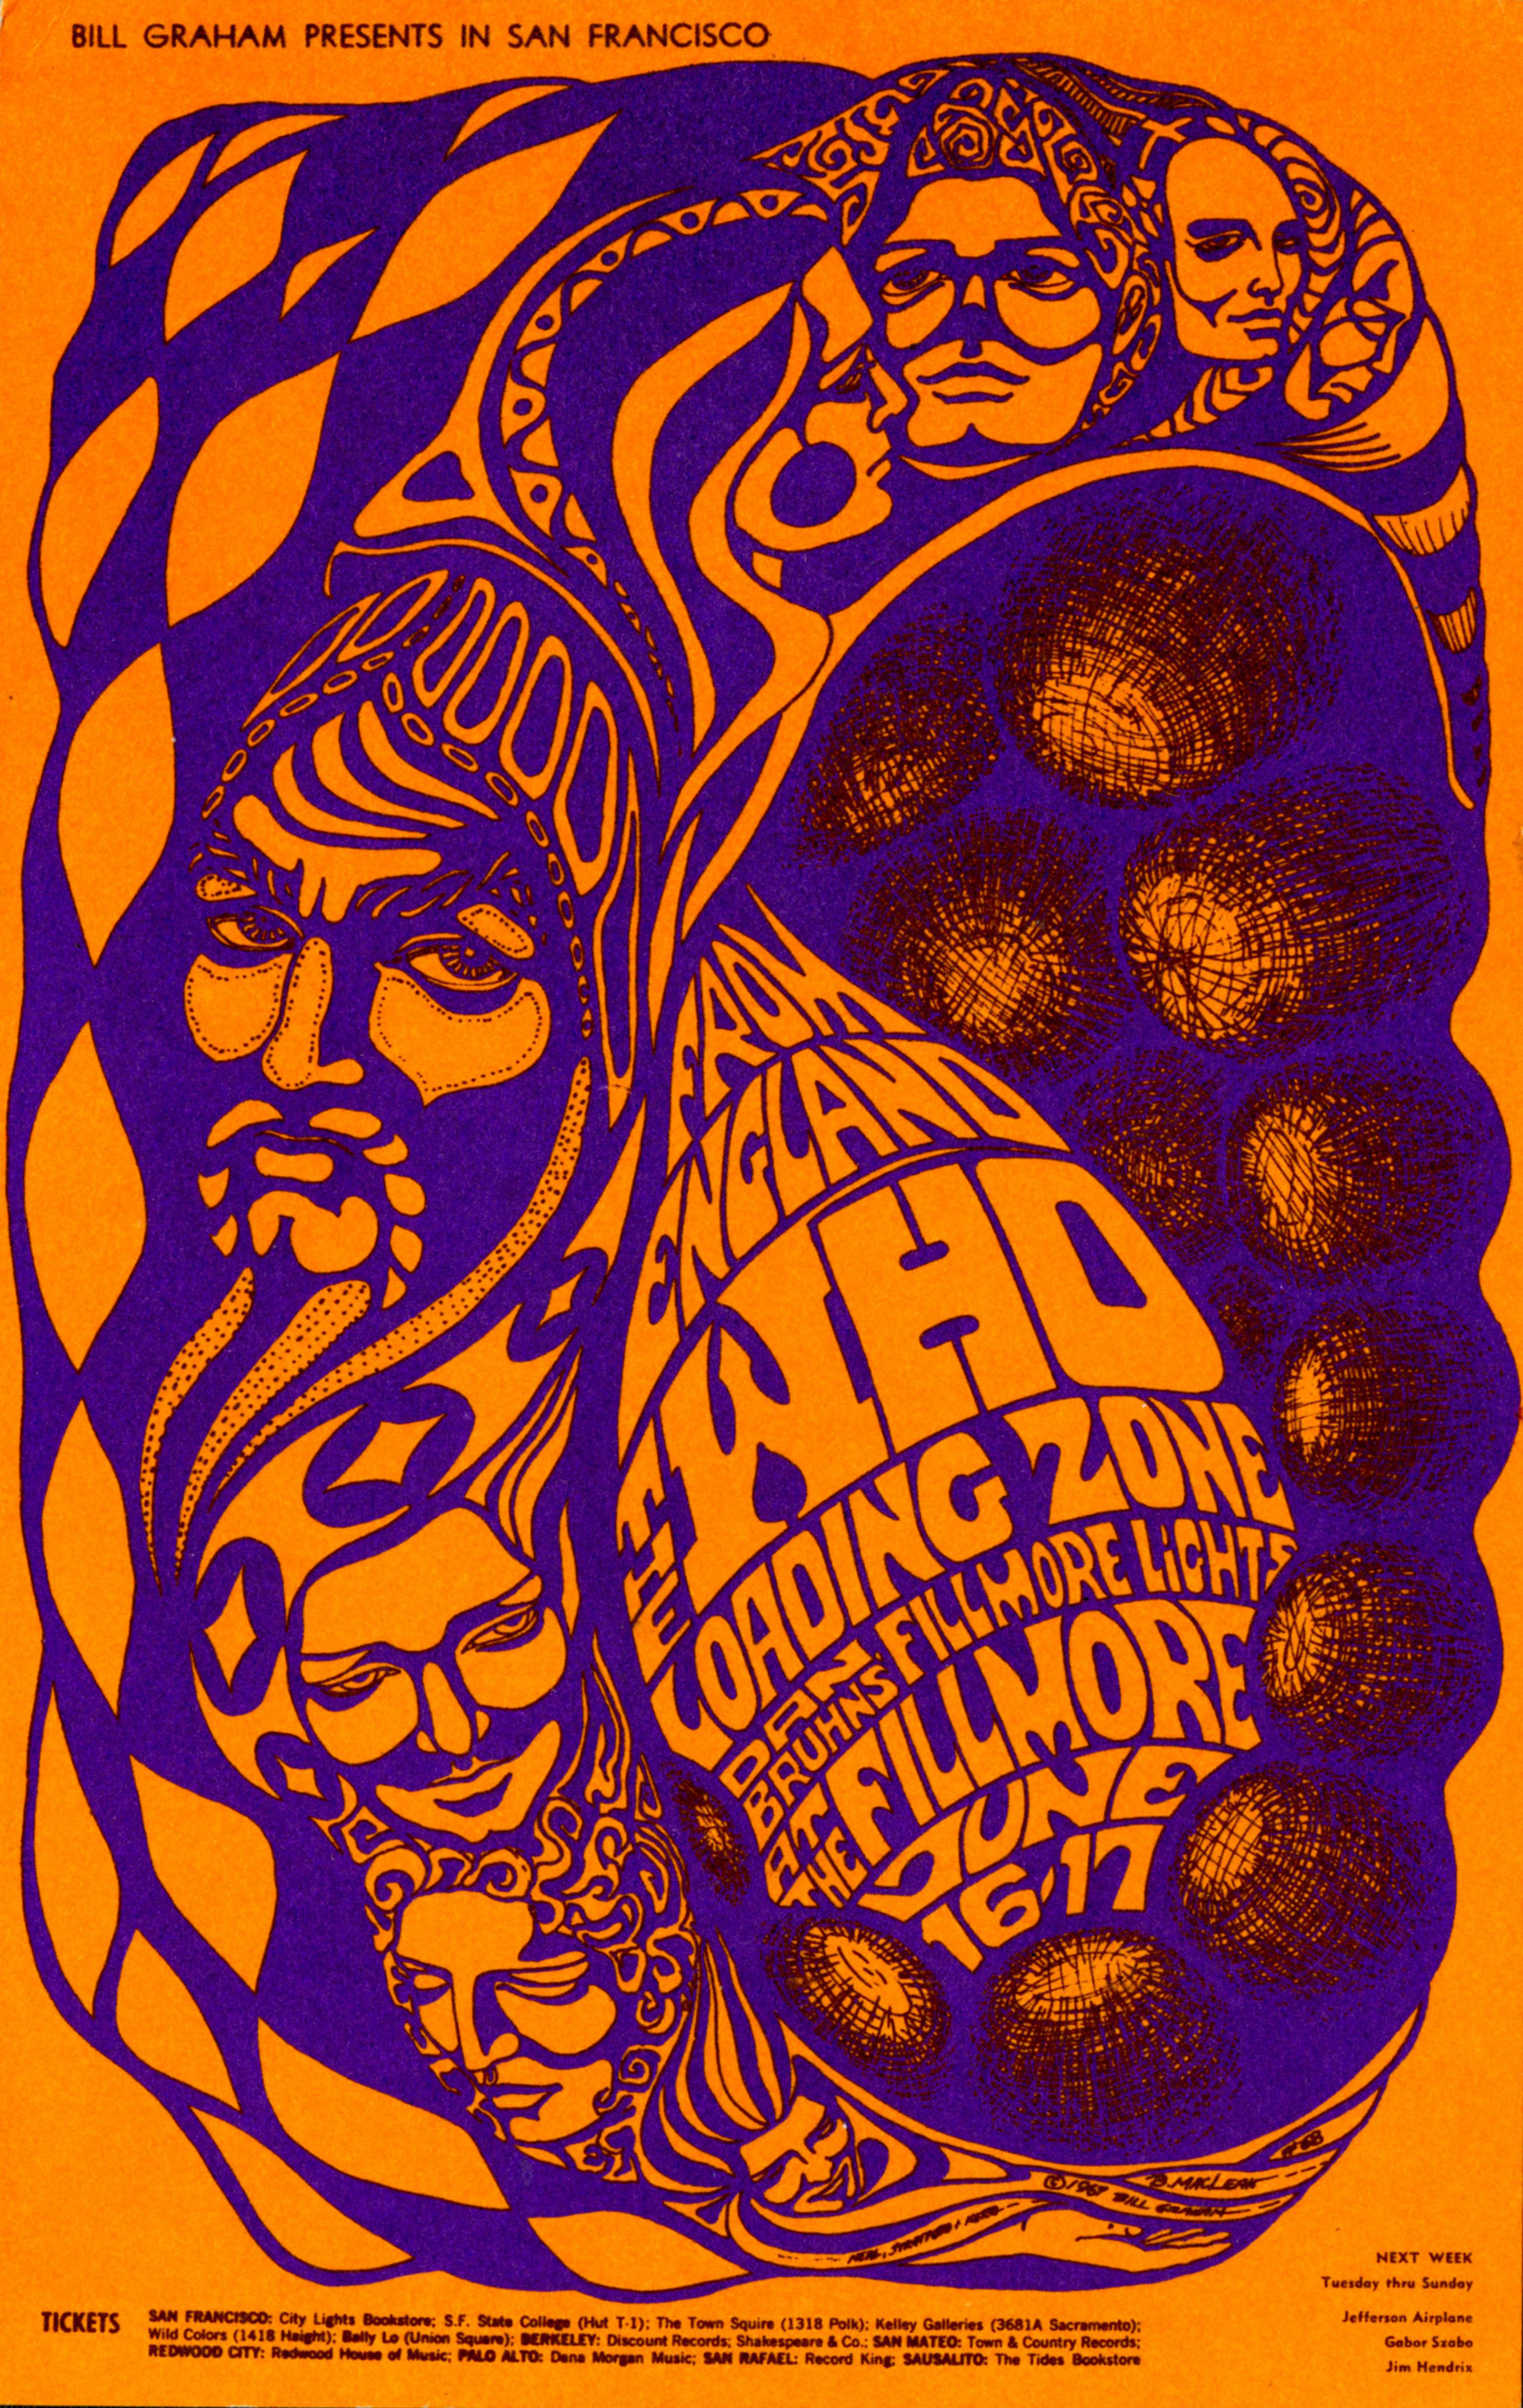 Fillmore handbill featuring the Who